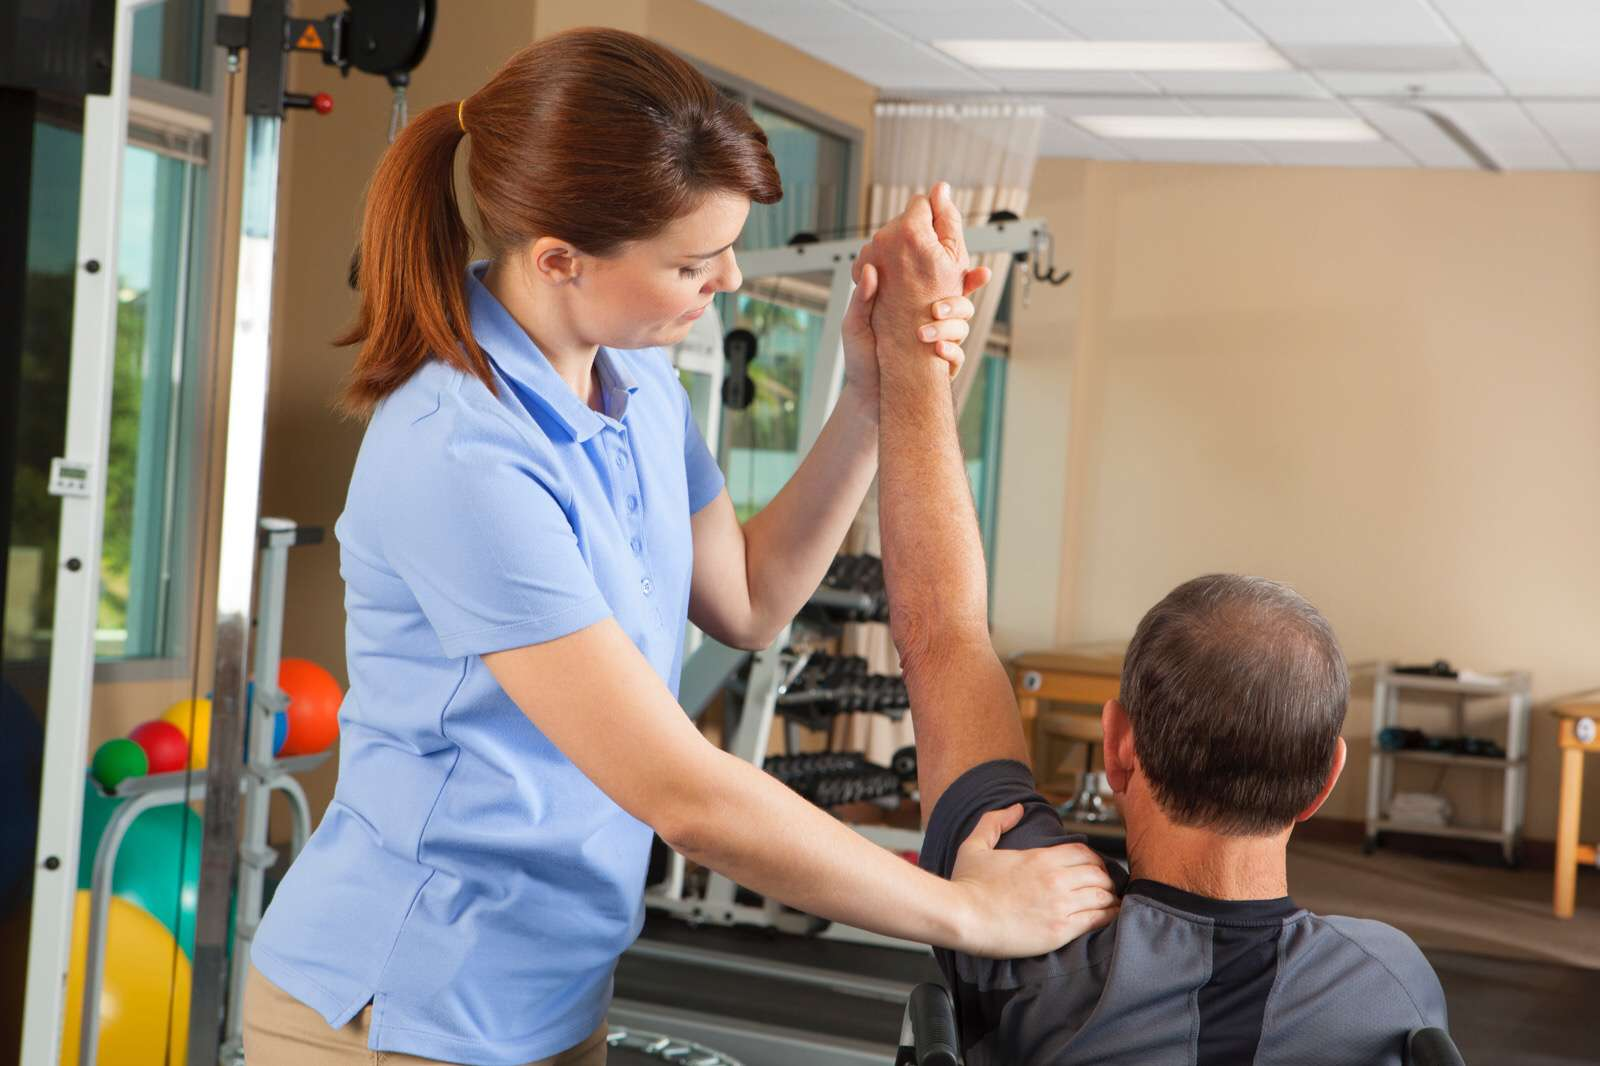 Physical therapist performing shoulder exercises with a patient.